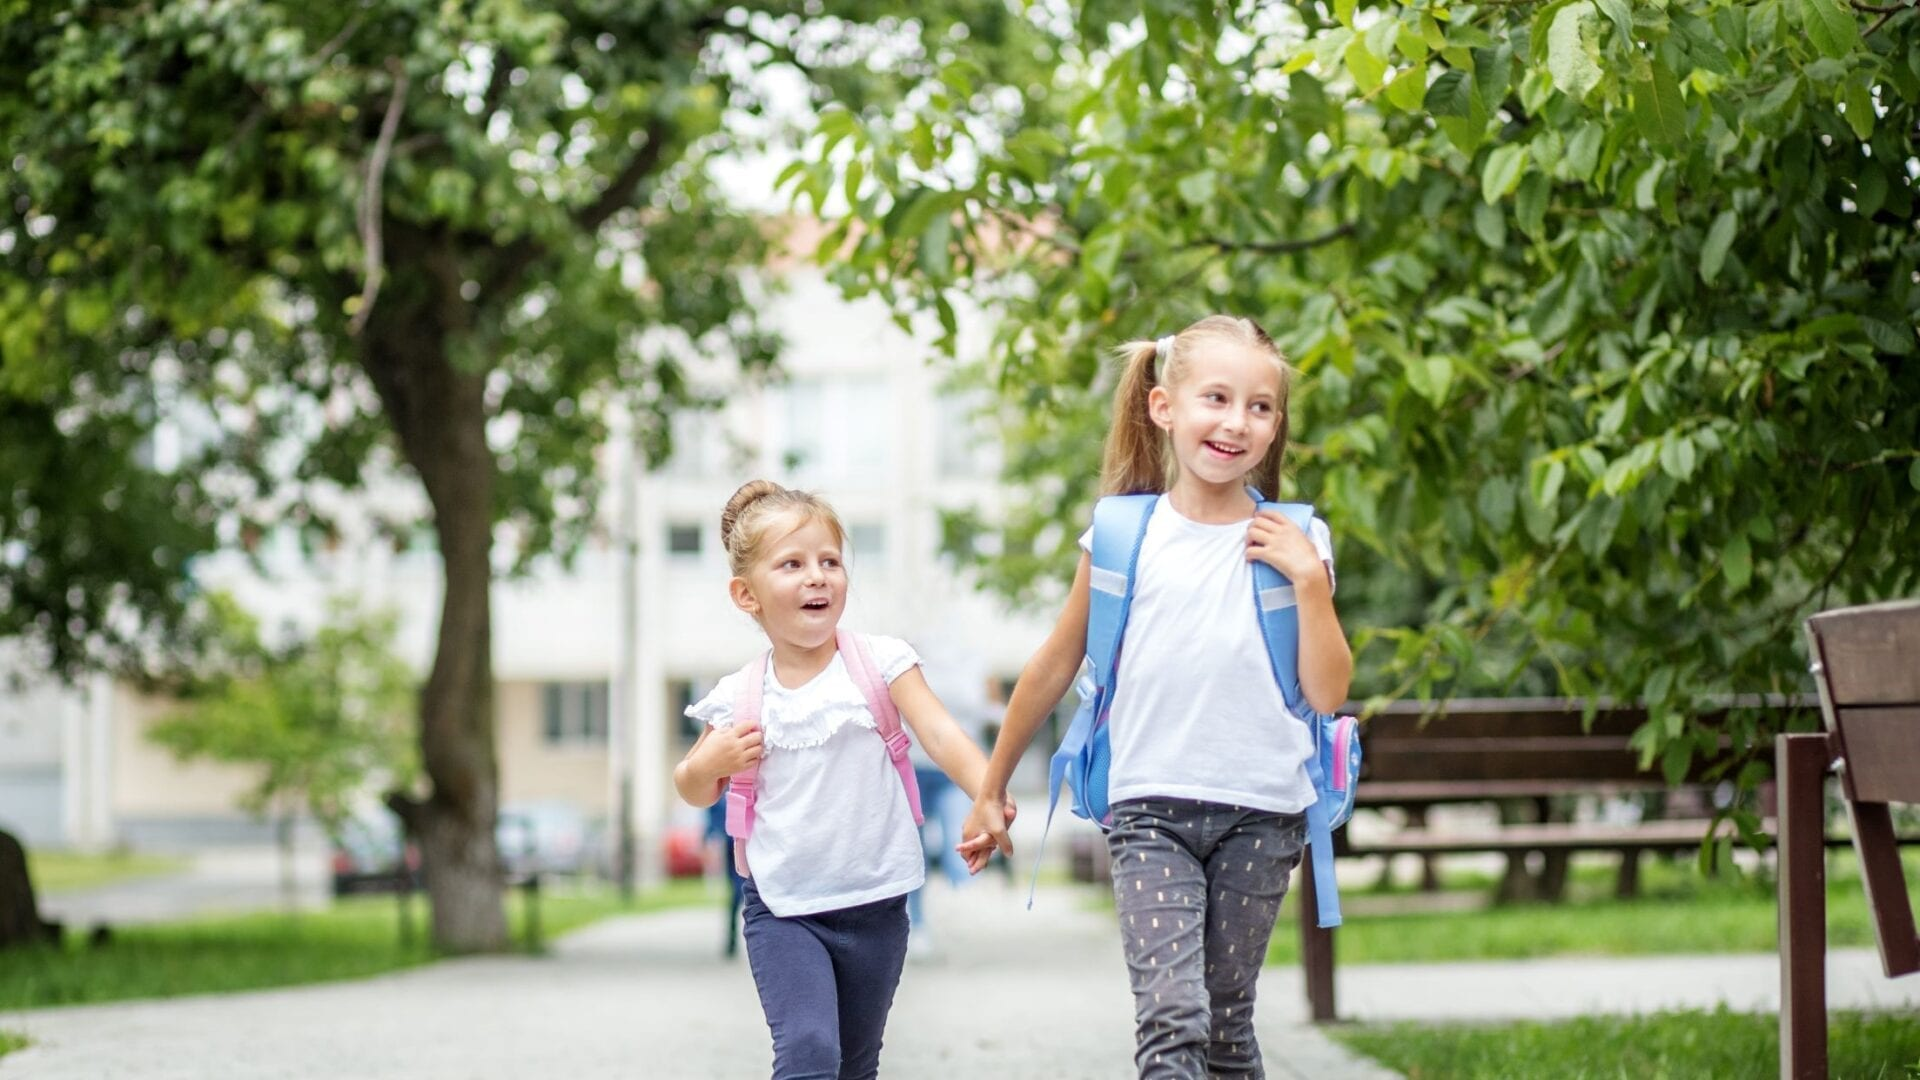 Two girls holding hands with backpacks on